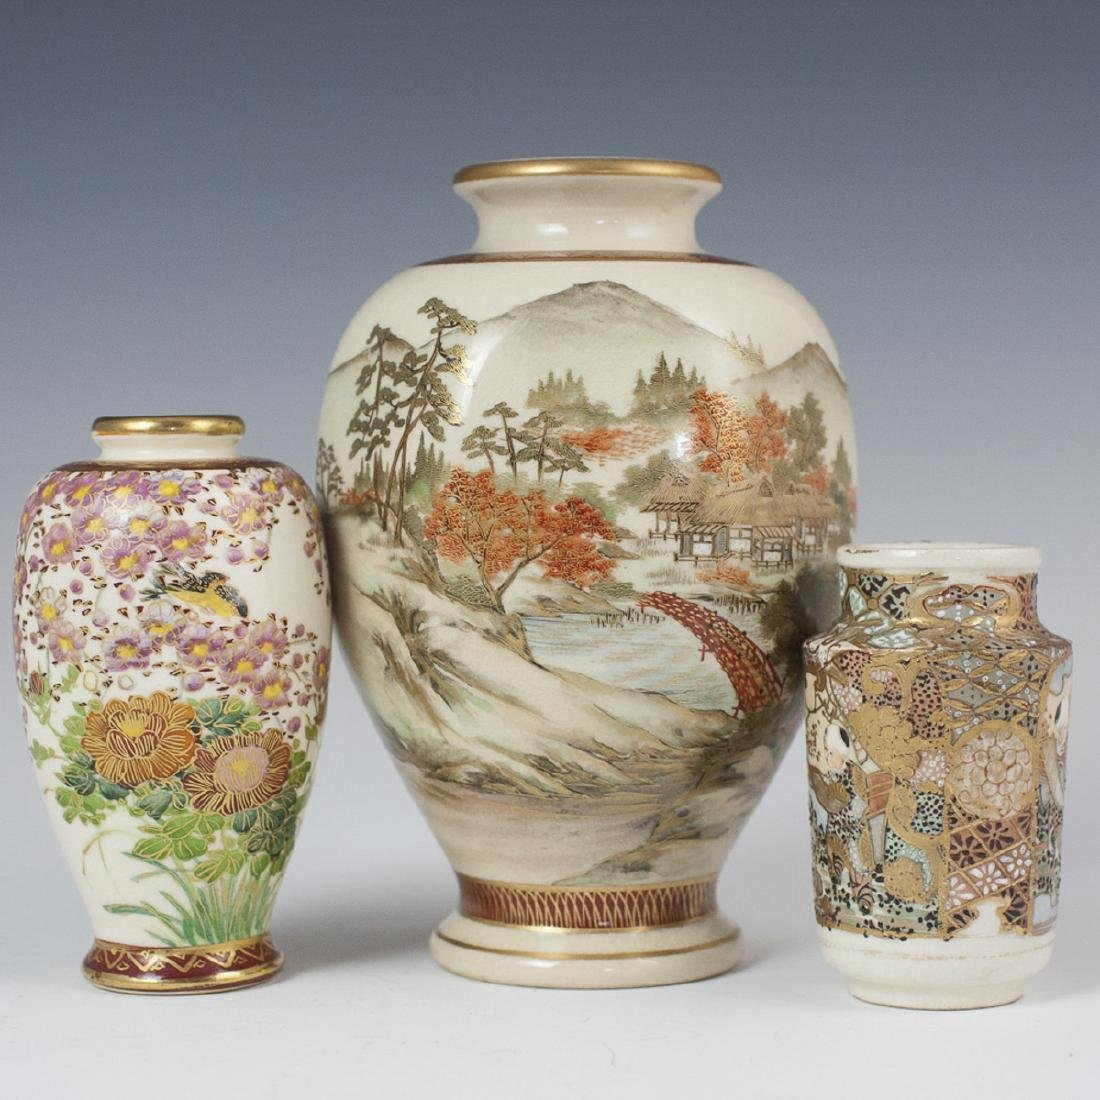 Antique Japanese Satsuma Porcelain Vases